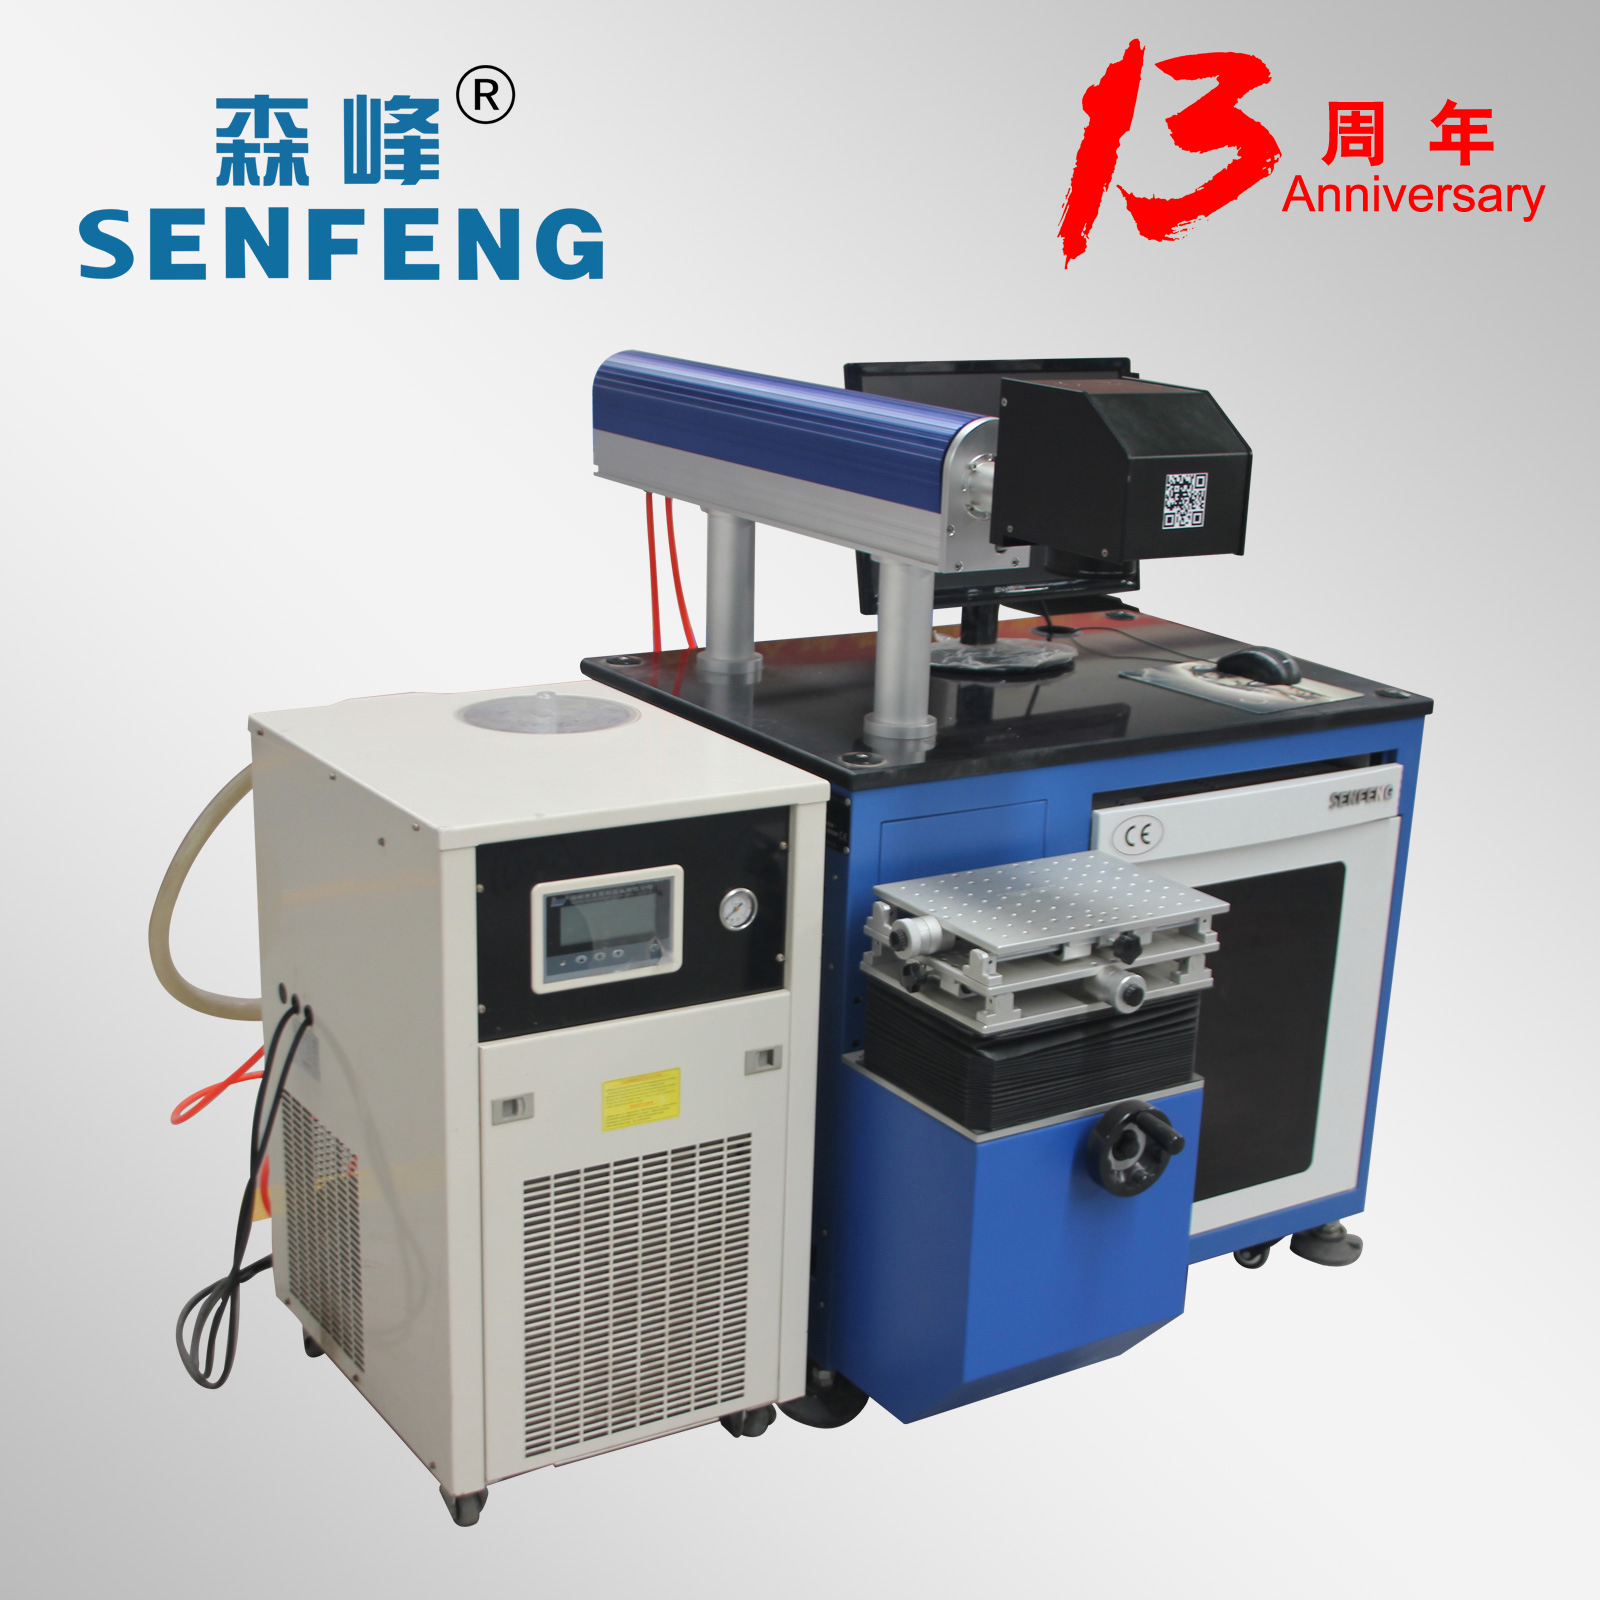 Mori peak semiconductor laser marking machine 50 w metal marking machine small SF200Y metal laser engraving machine